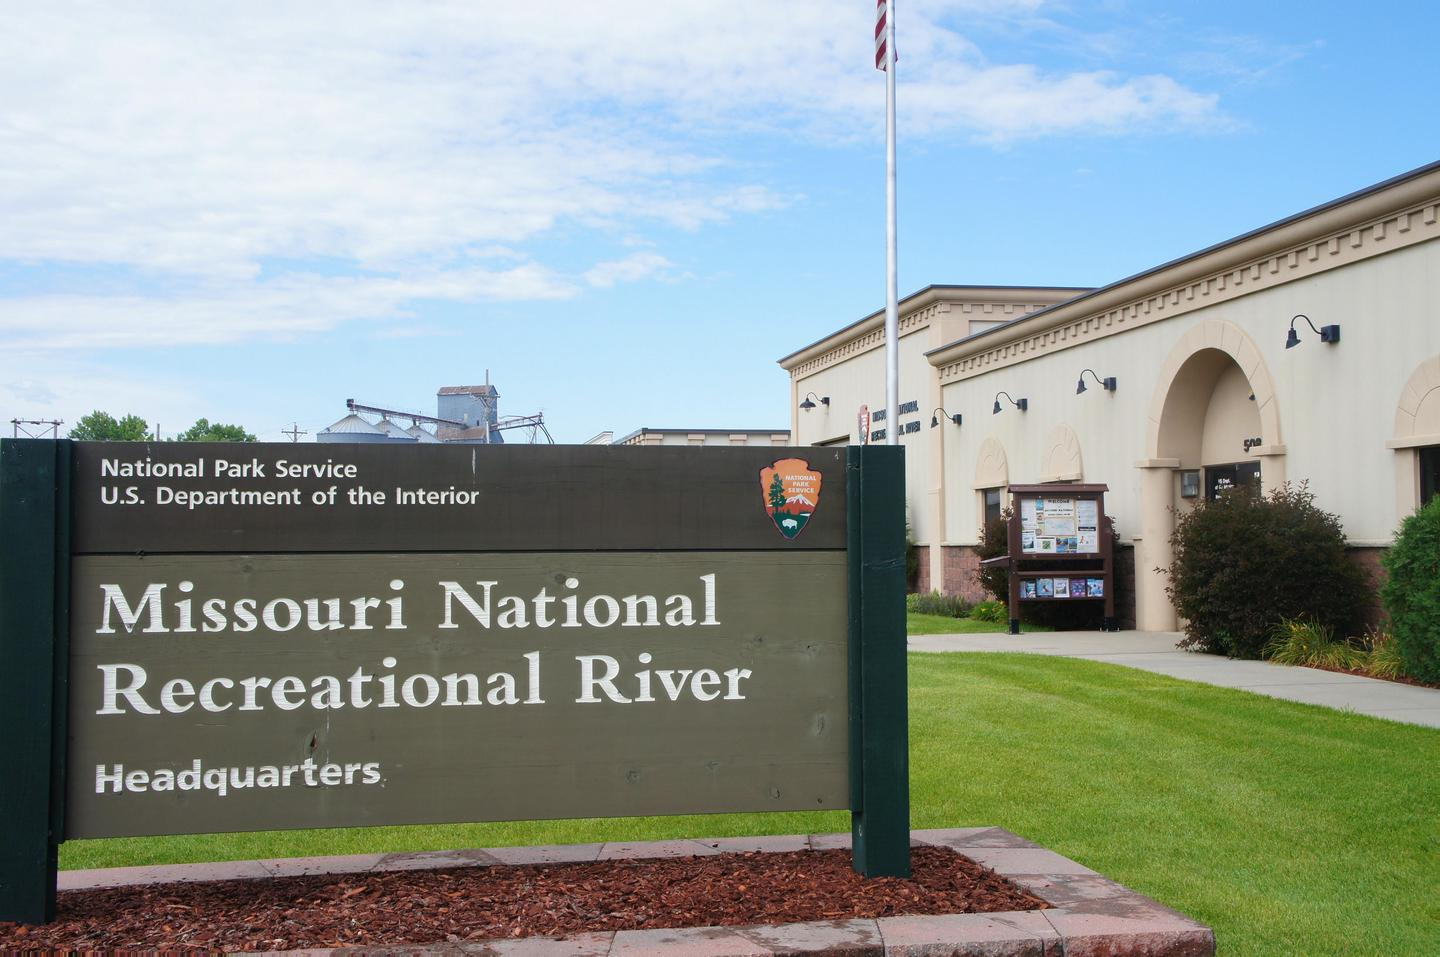 Missouri National Recreational River Headquarters and Visitor Contact Station